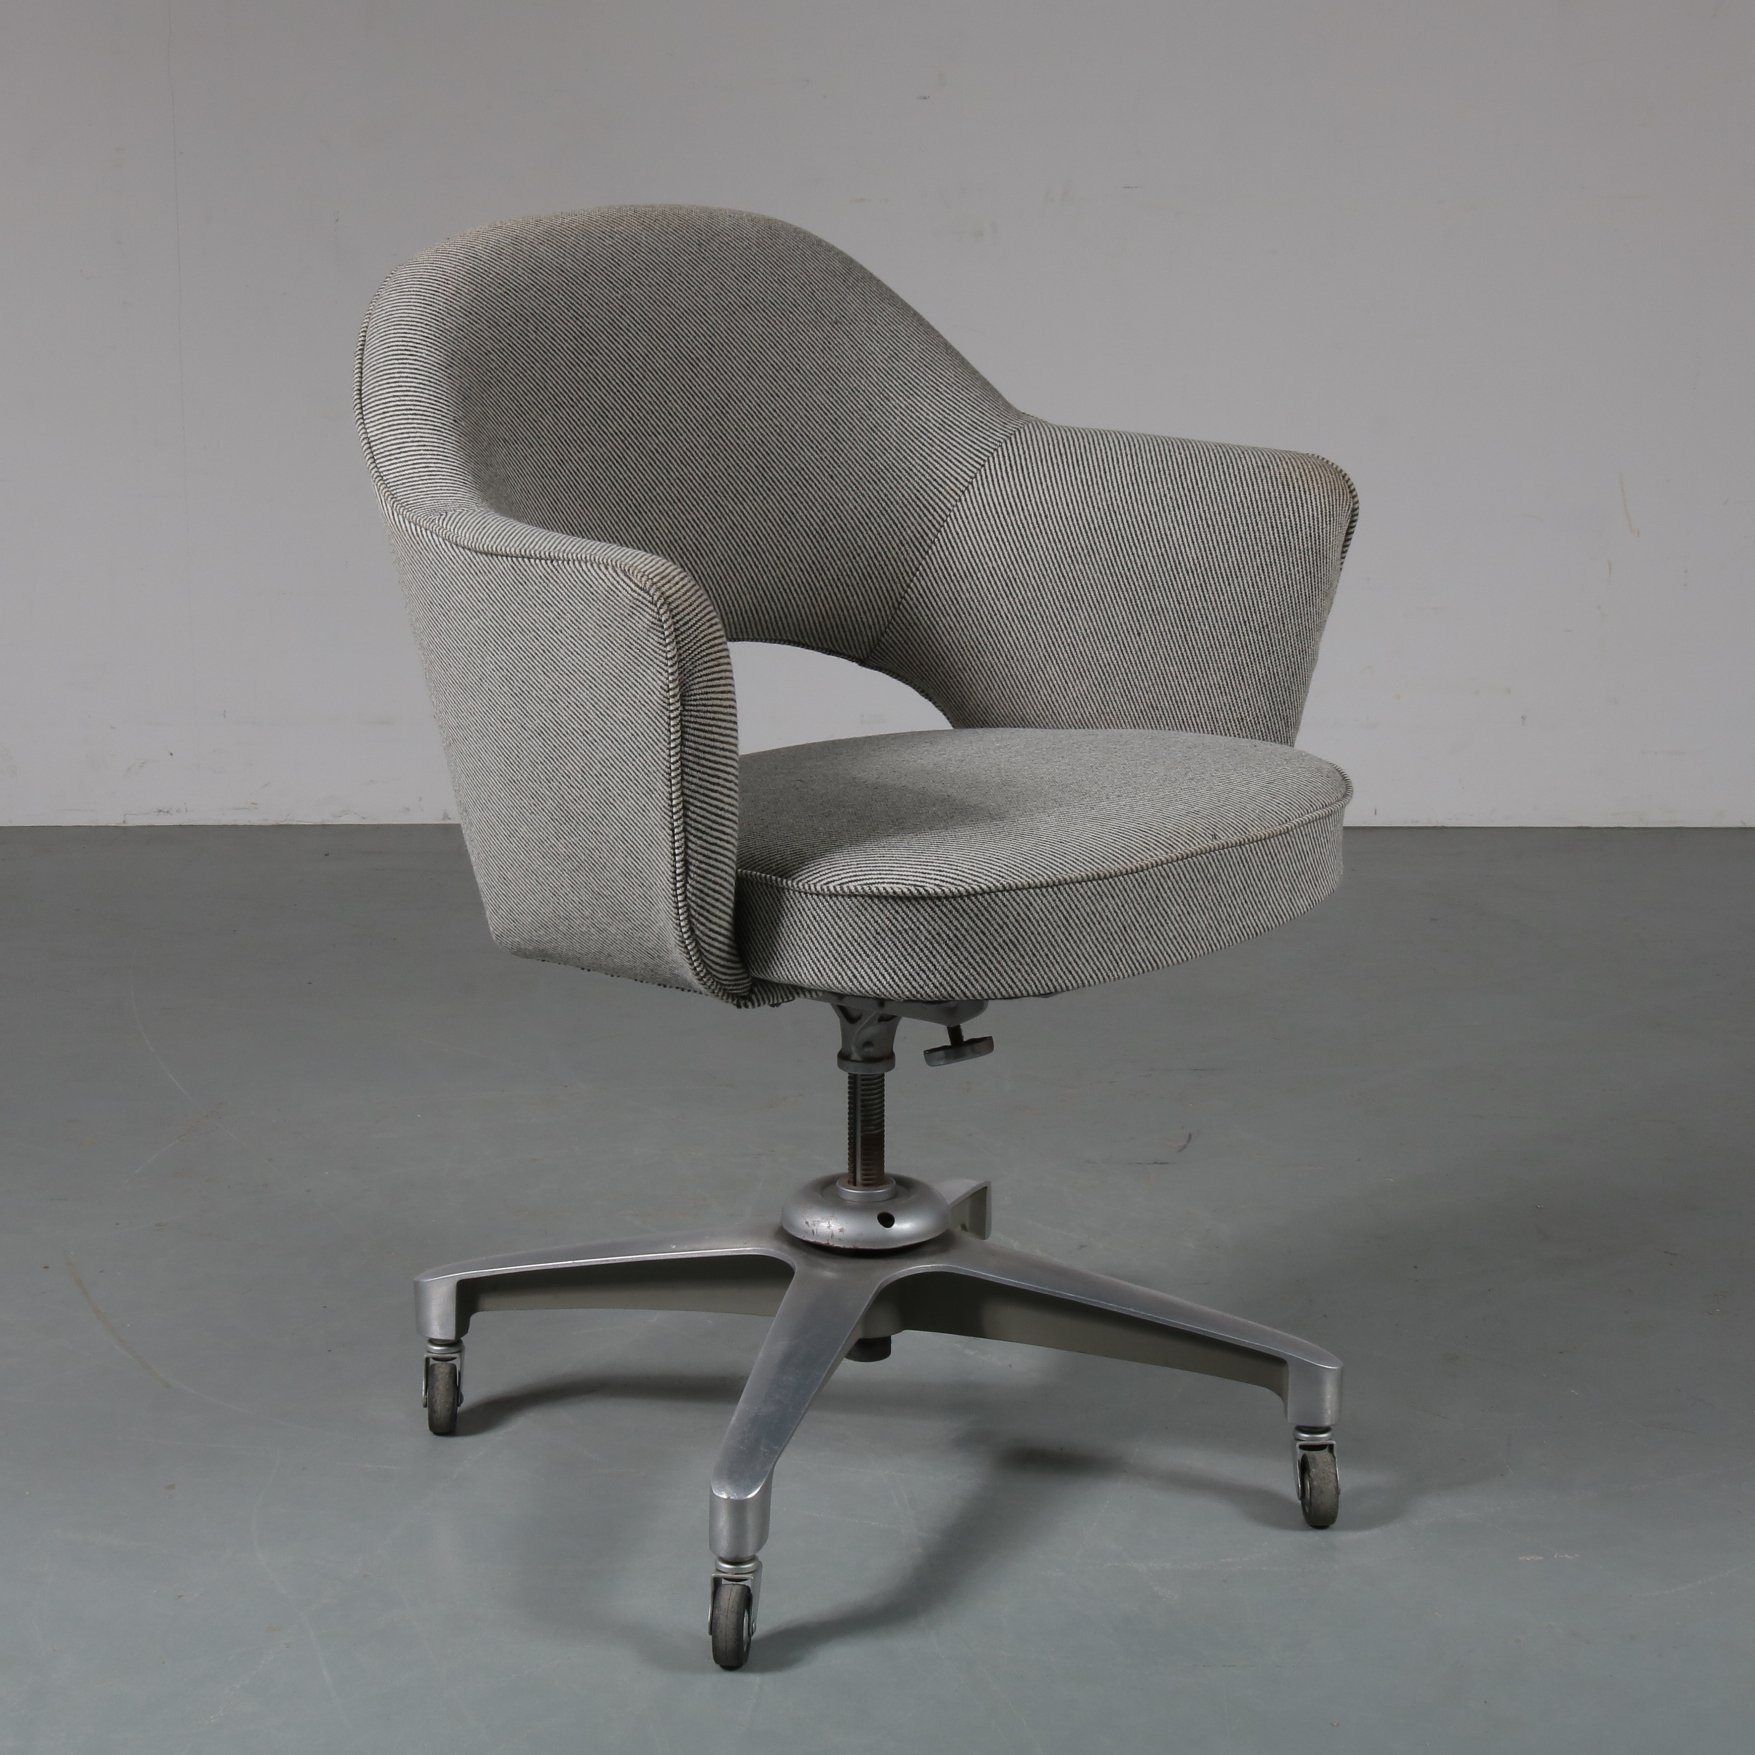 Desk chair by Eero Saarinen for Knoll International, 42s